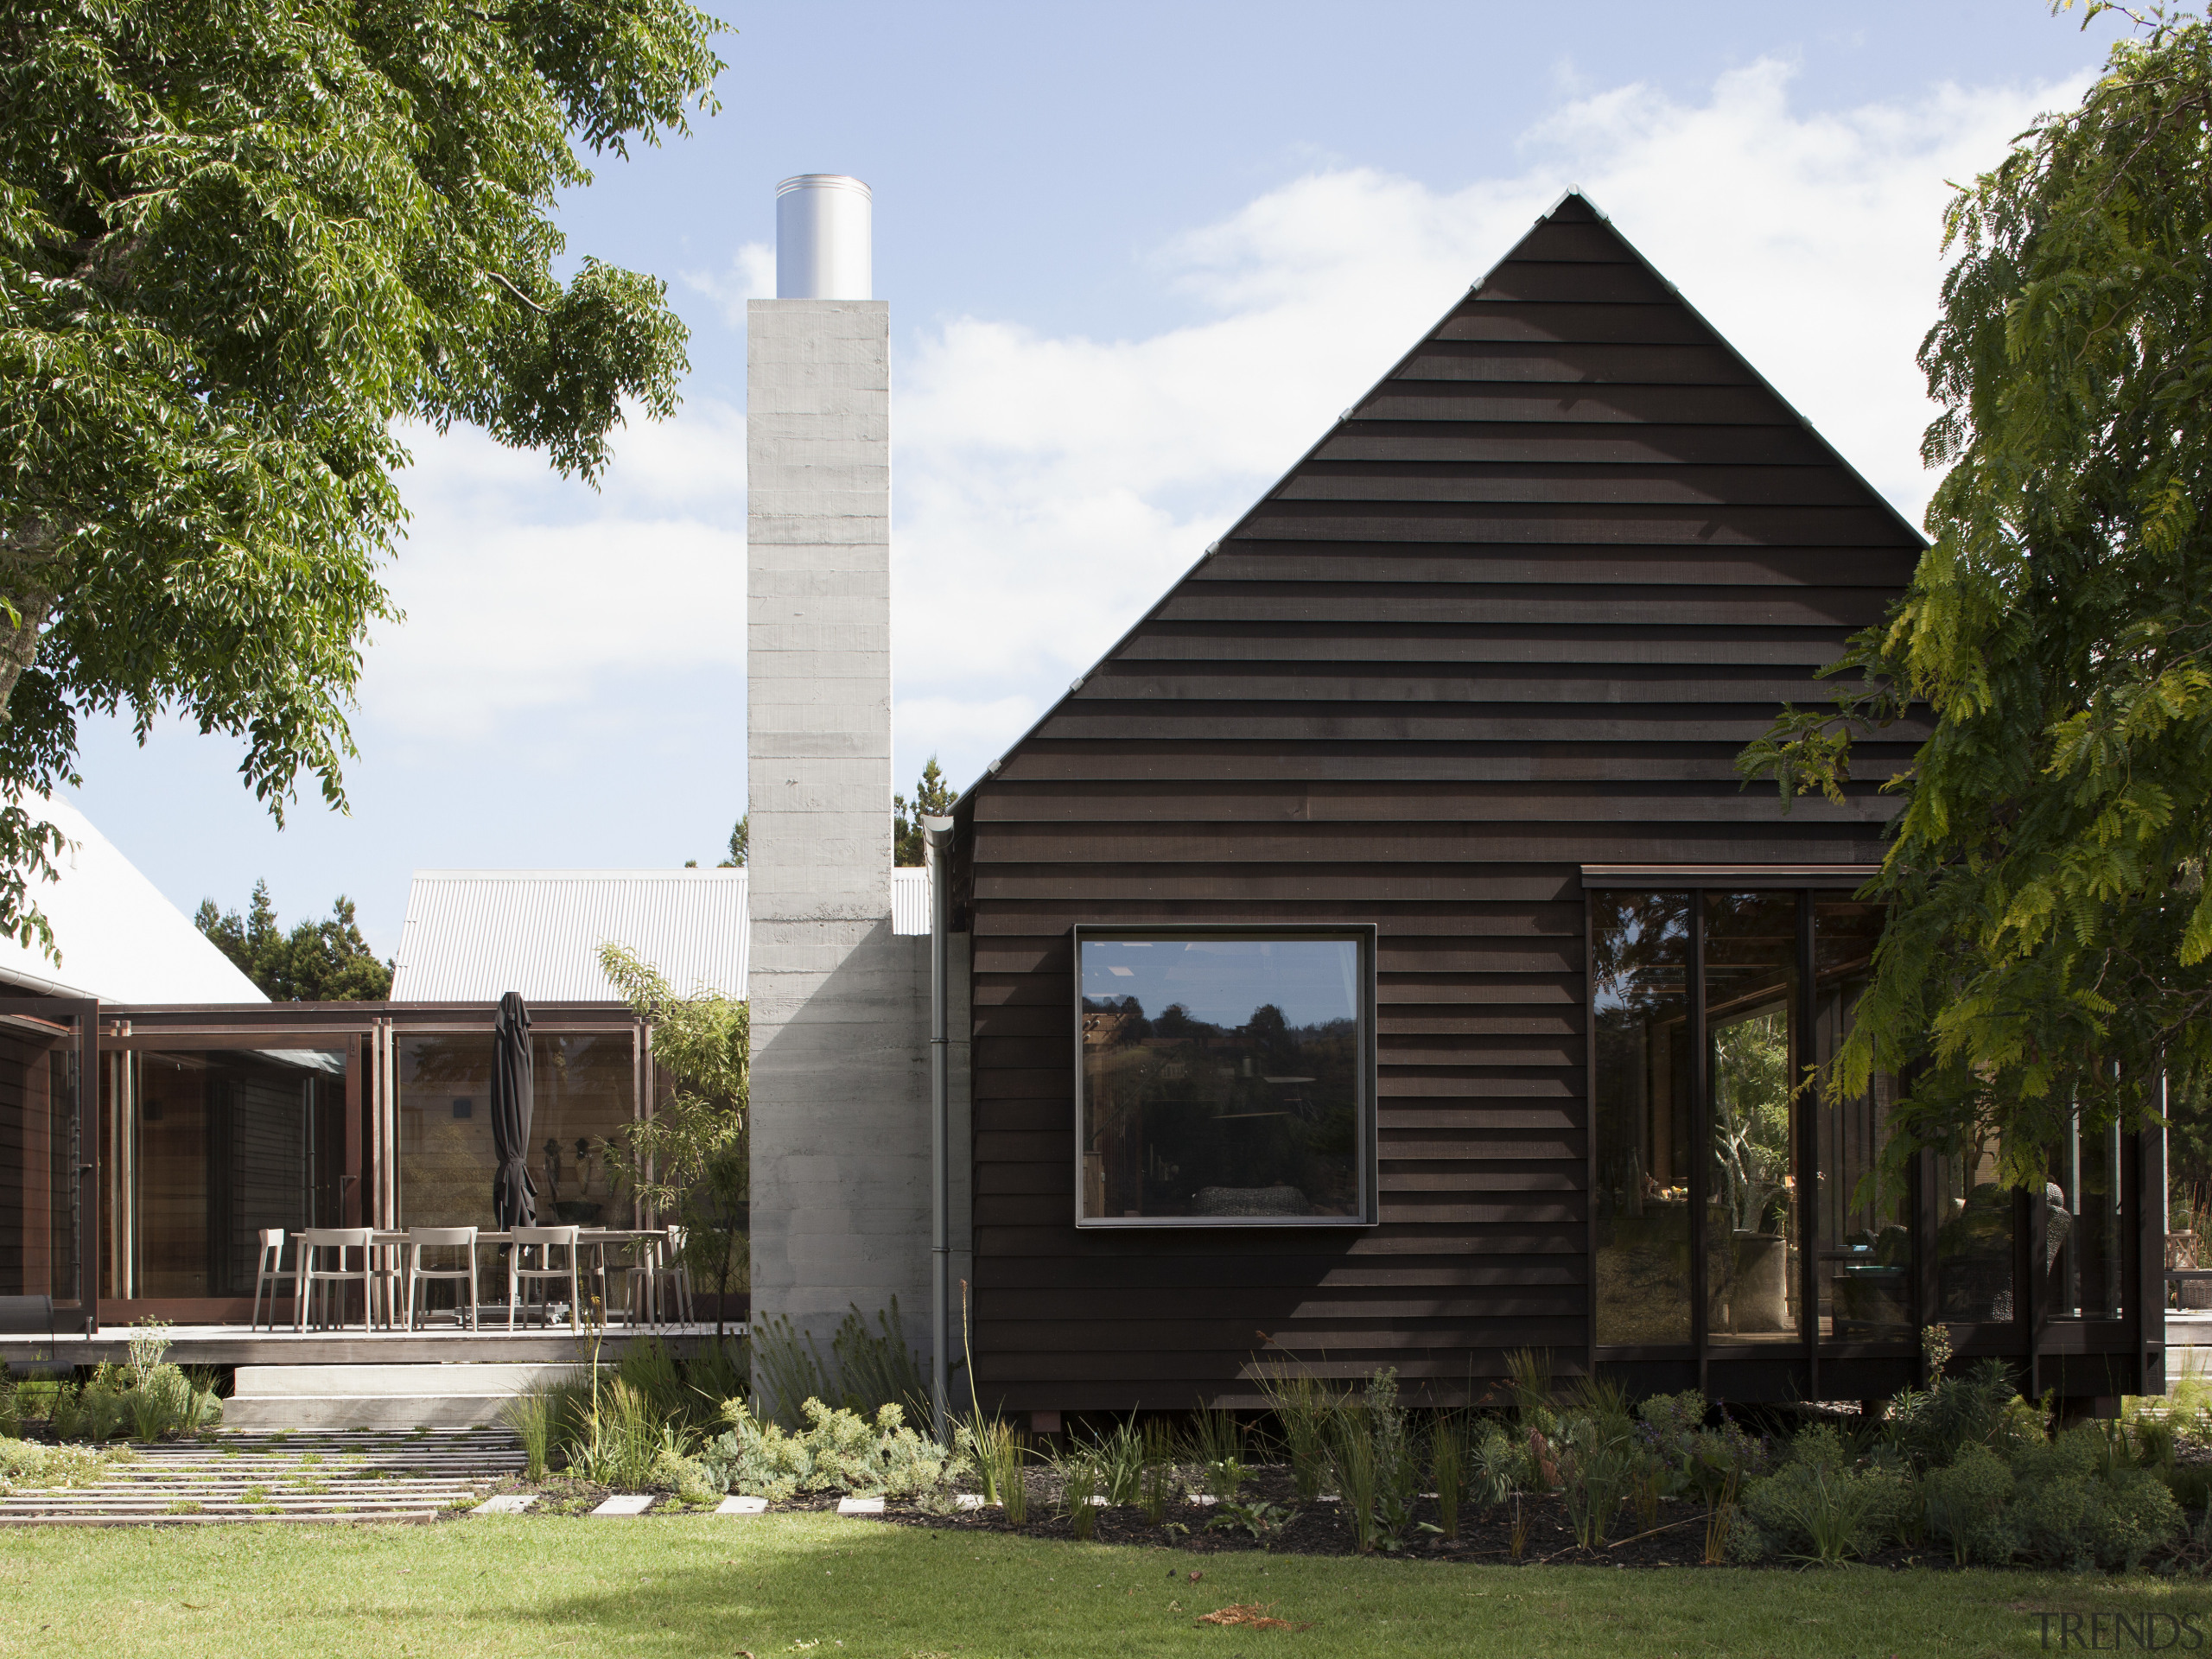 This home took out winner of the Carter architecture, cottage, facade, farmhouse, home, house, property, real estate, black, white